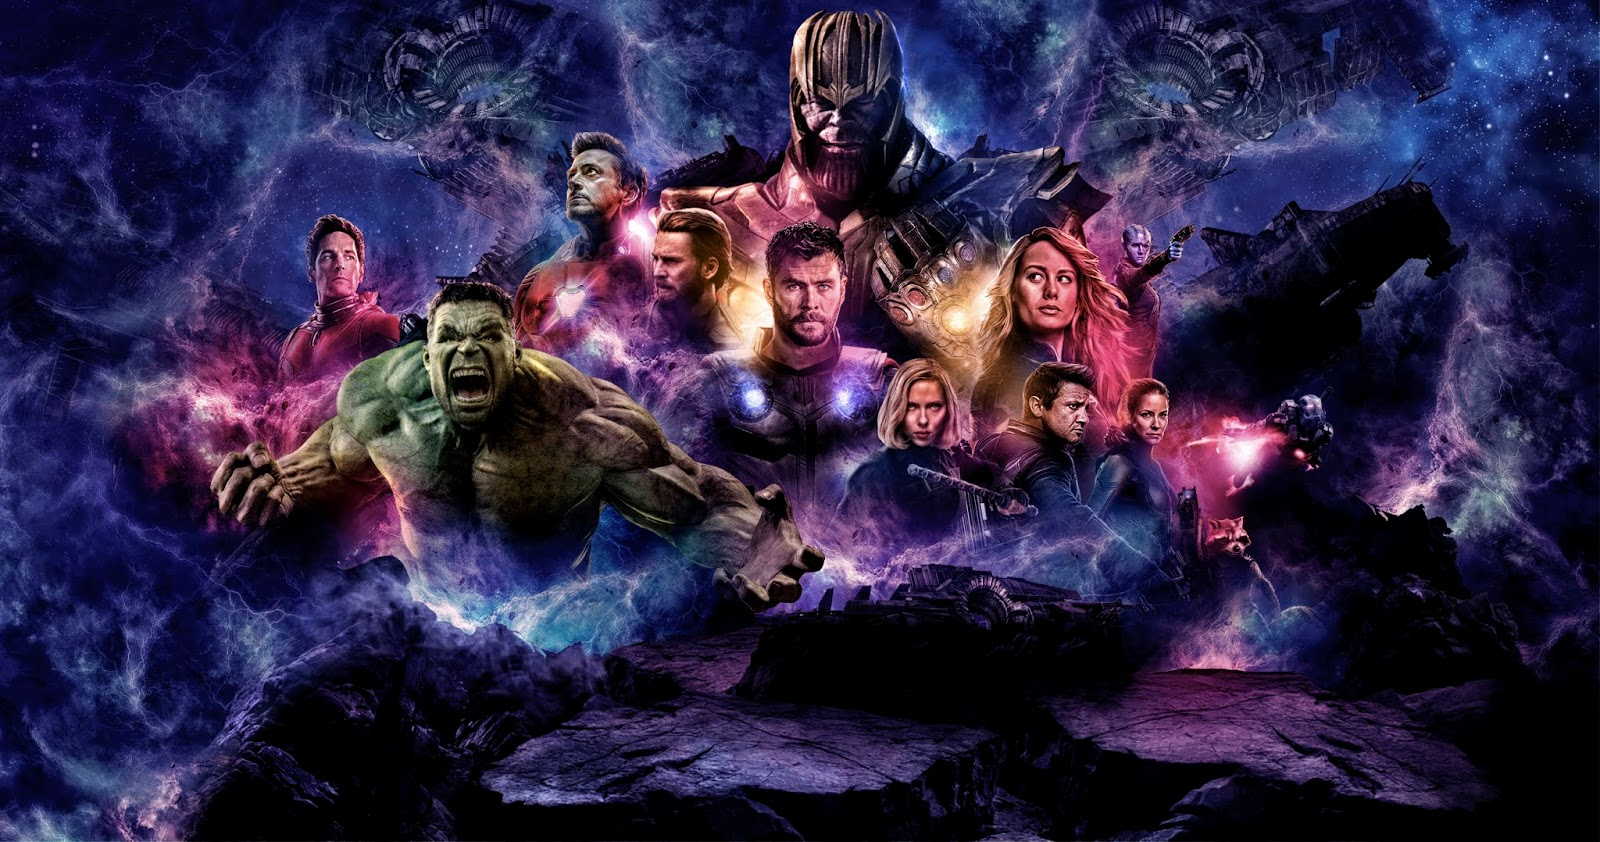 Avengers Endgame Wallpaper Hd Movie Stream 4k Online